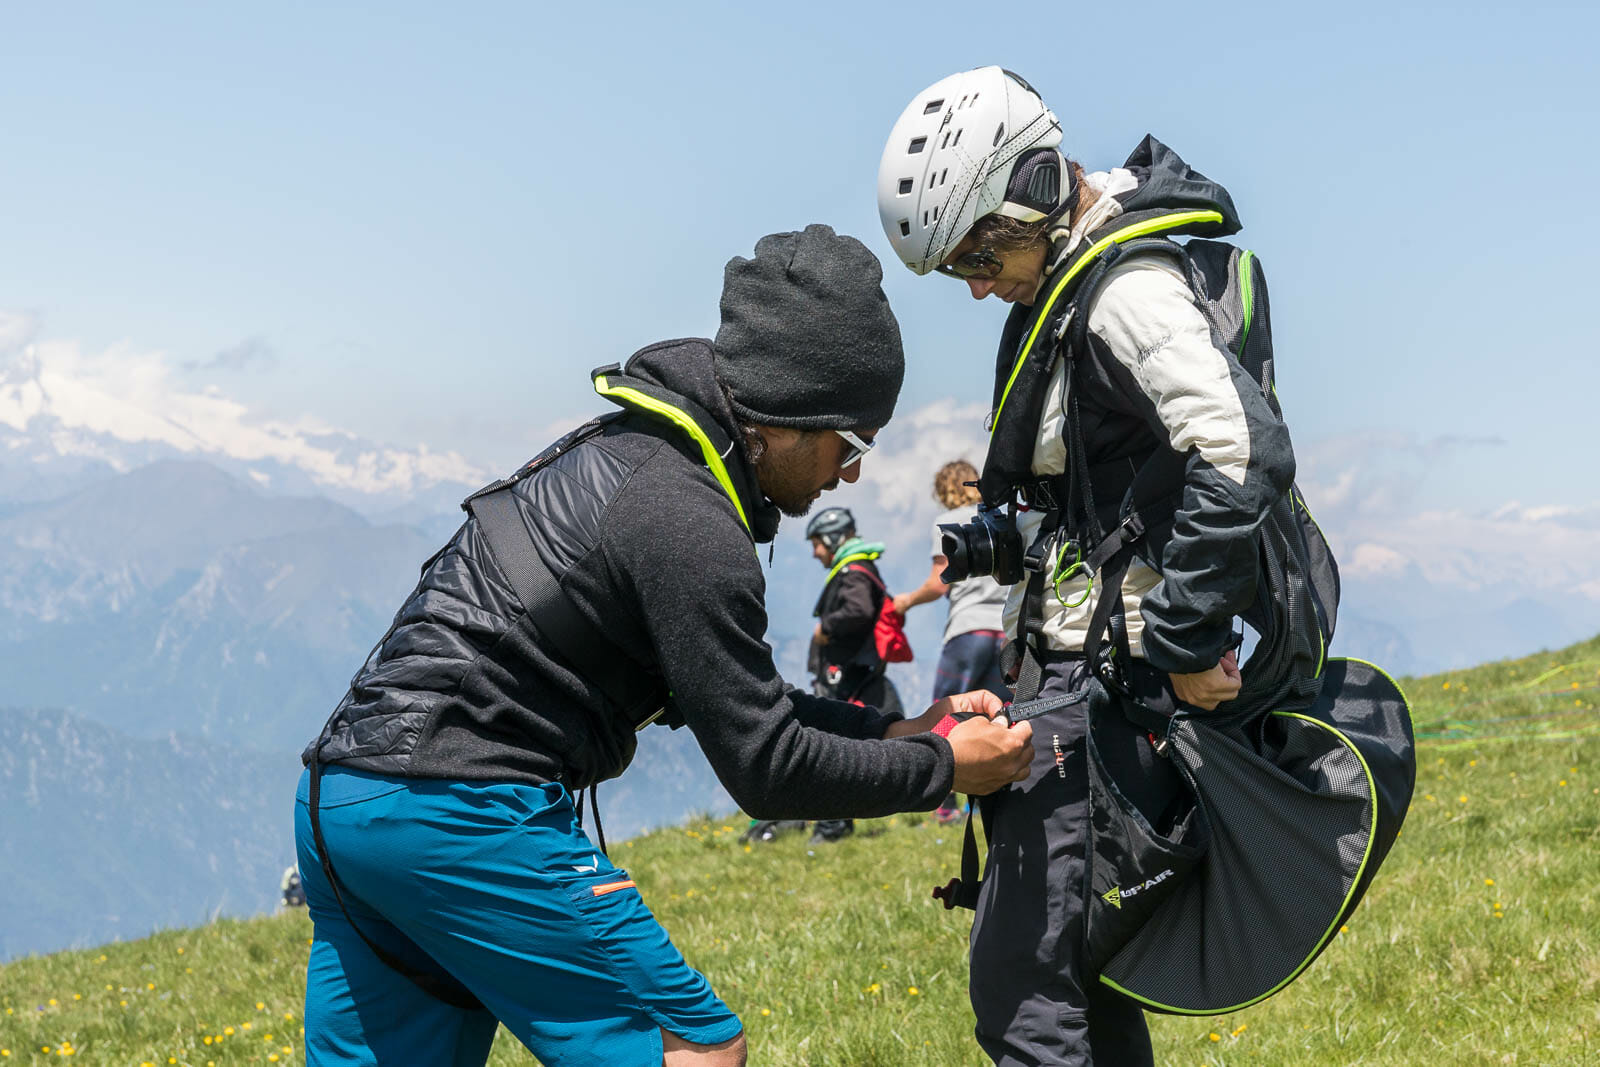 preparation tandem paragliding flight